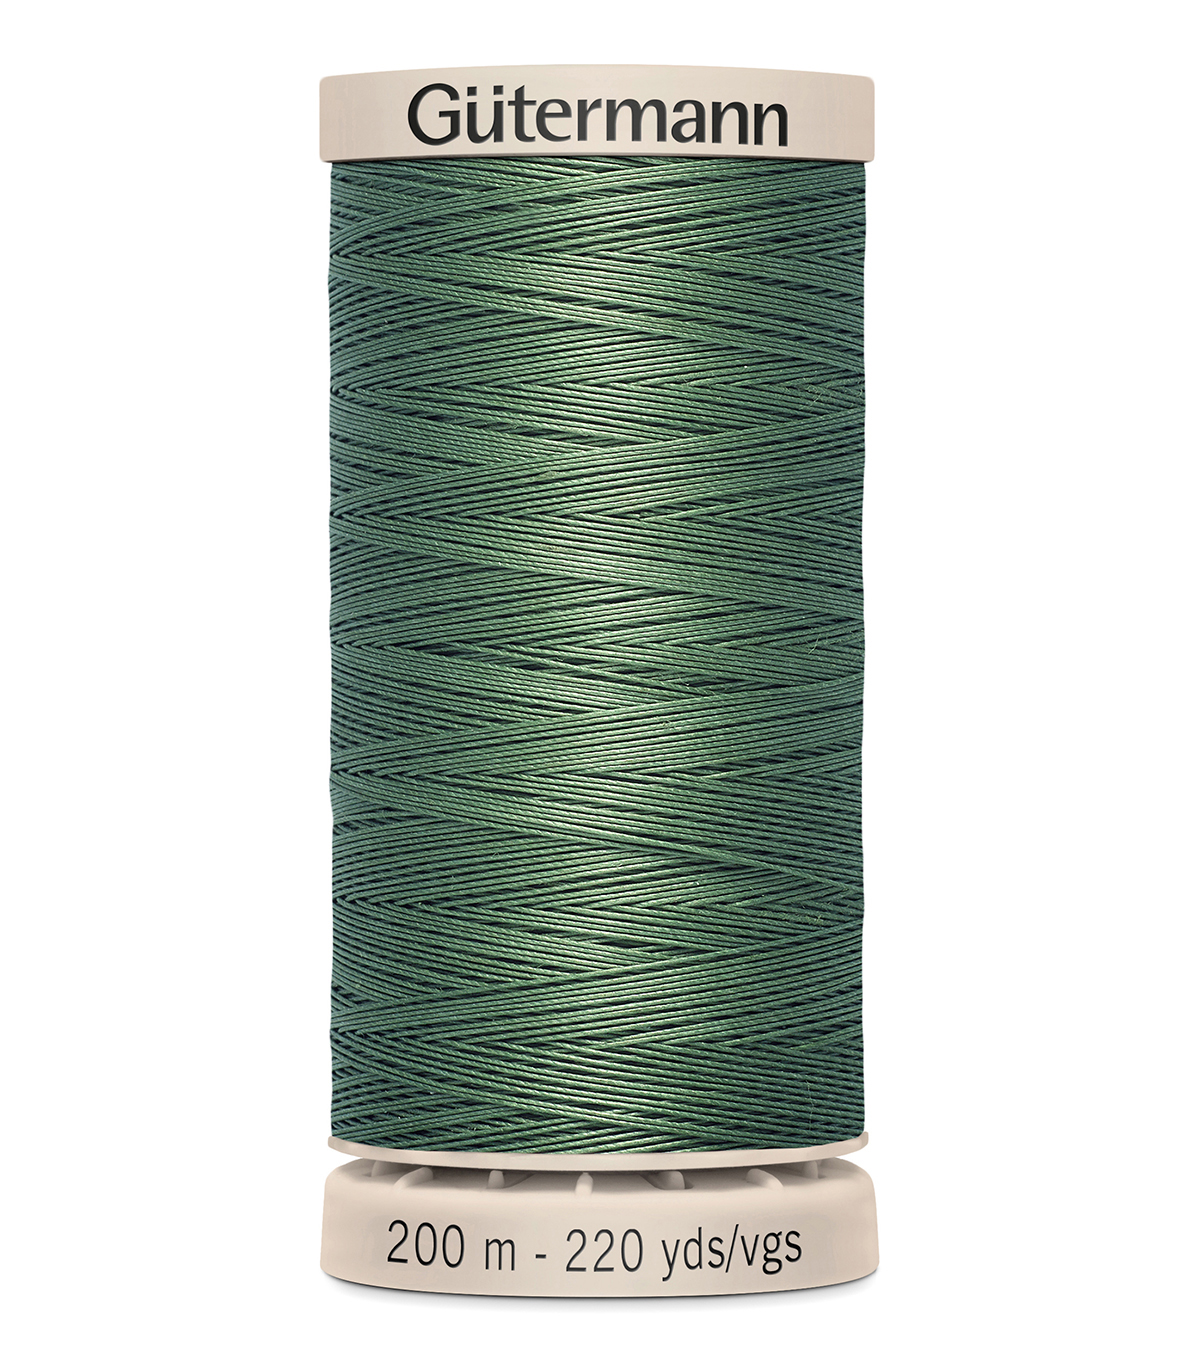 Gutermann Hand Quilting Thread 200 Meters (220 Yrds)-Primary, Forest Green #8724